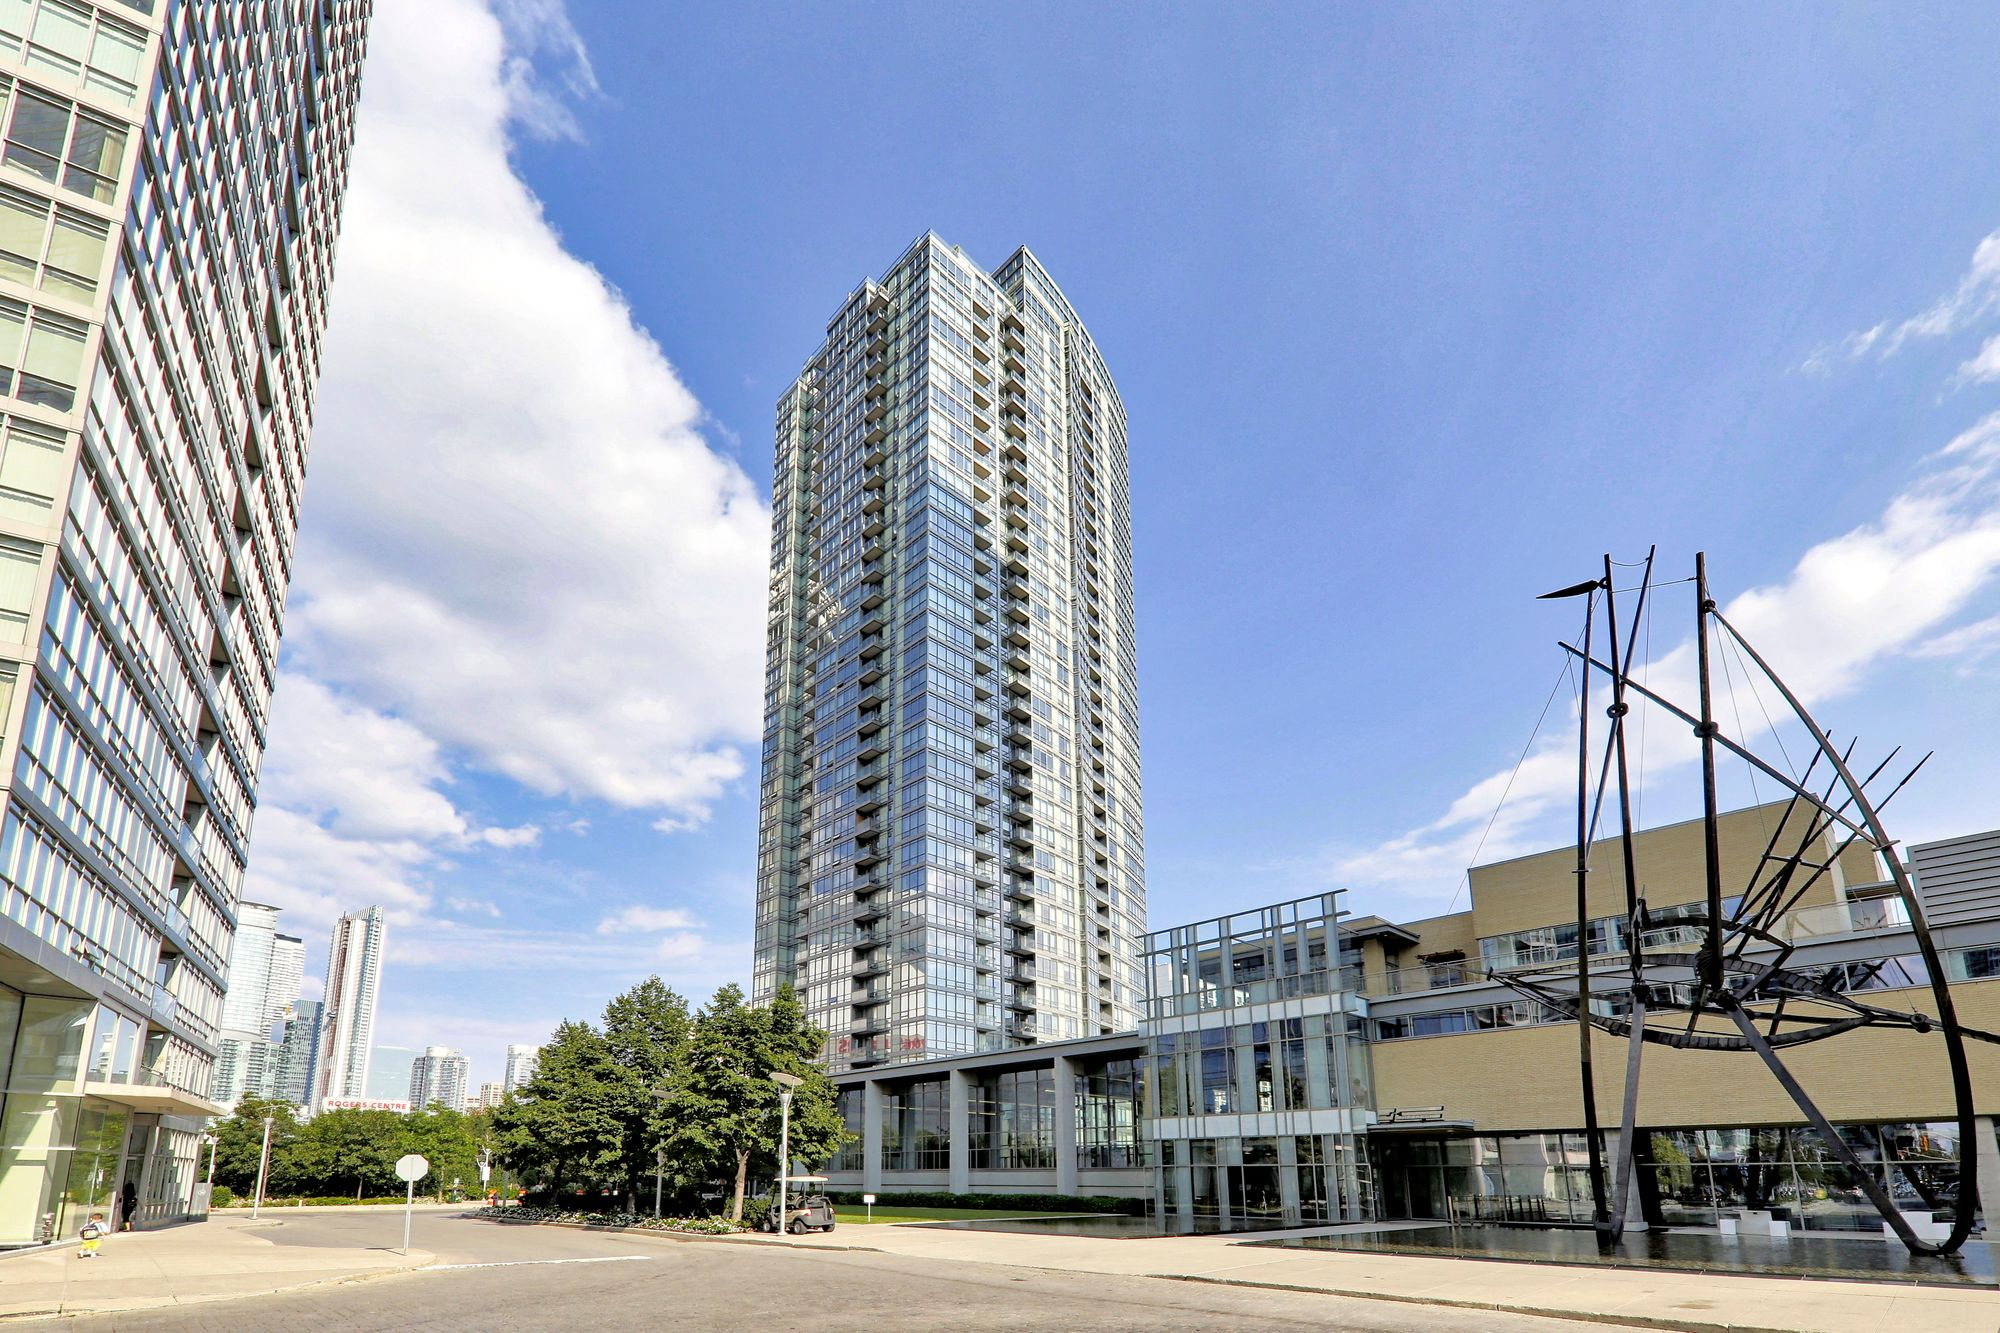 5 Mariner Terr. This condo at Harbour View Estates III Condos is located in  Downtown, Toronto - image #1 of 7 by Strata.ca